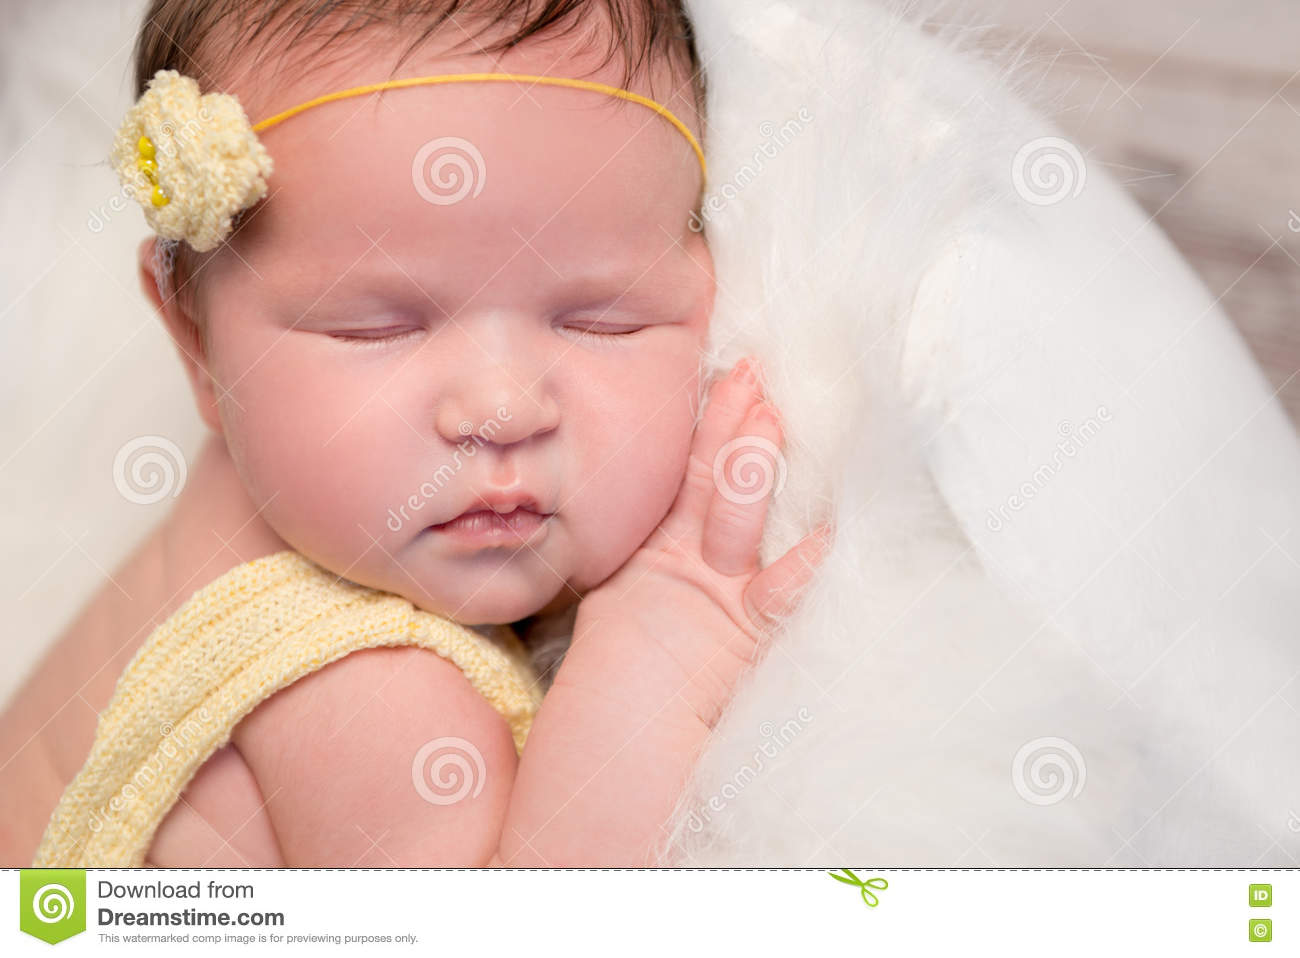 99521cb5b Lovely Baby In Yellow Romper Sleeping With Legs Crossed Stock Photo ...